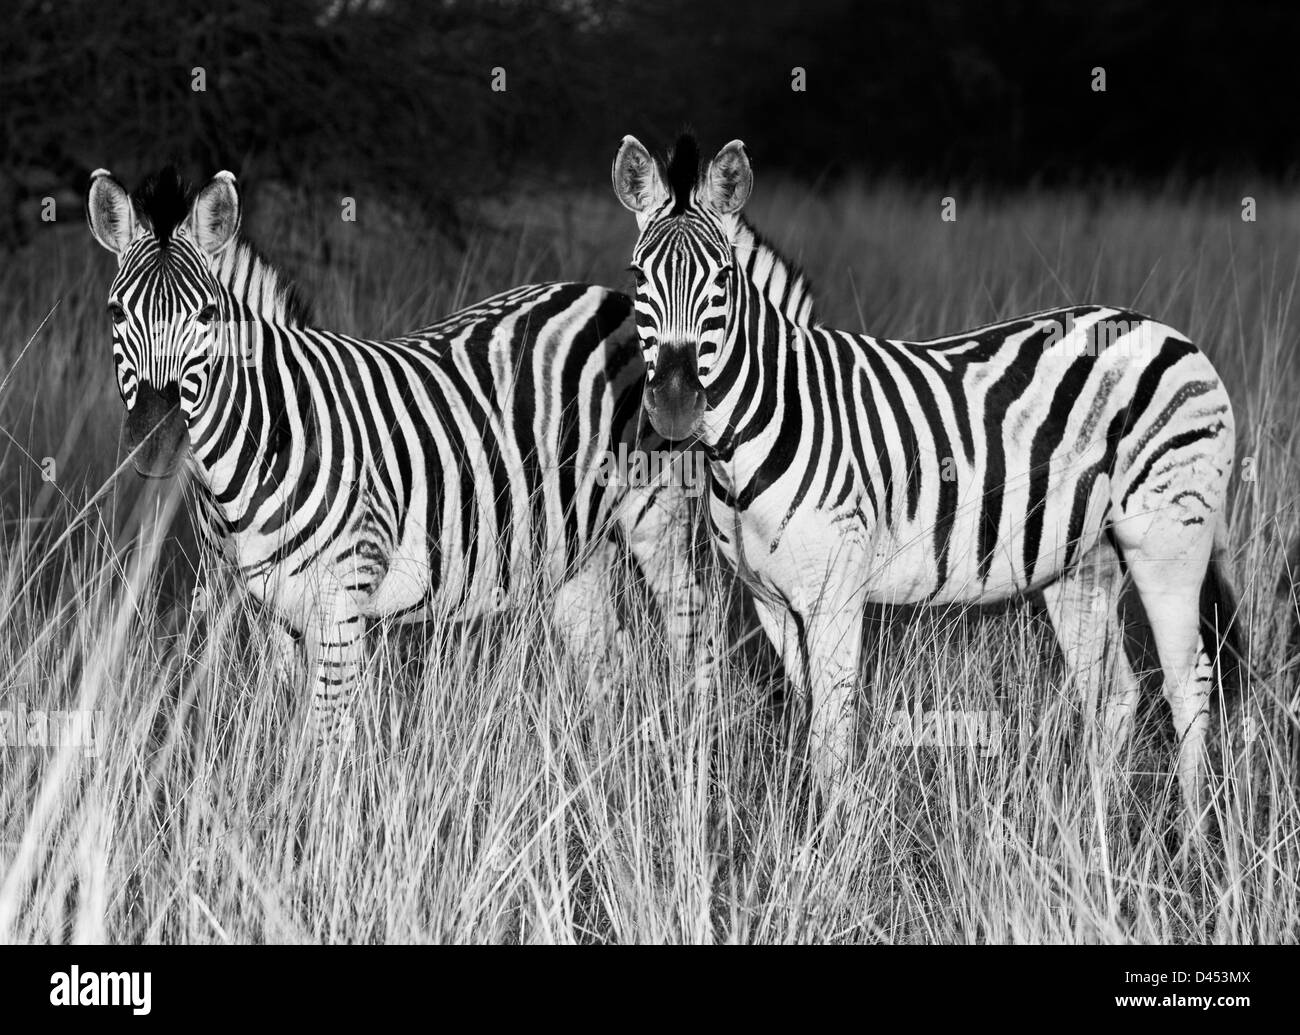 Two Plains Zebras stand in grassland, Phinda Game Reserve, South Africa Stock Photo